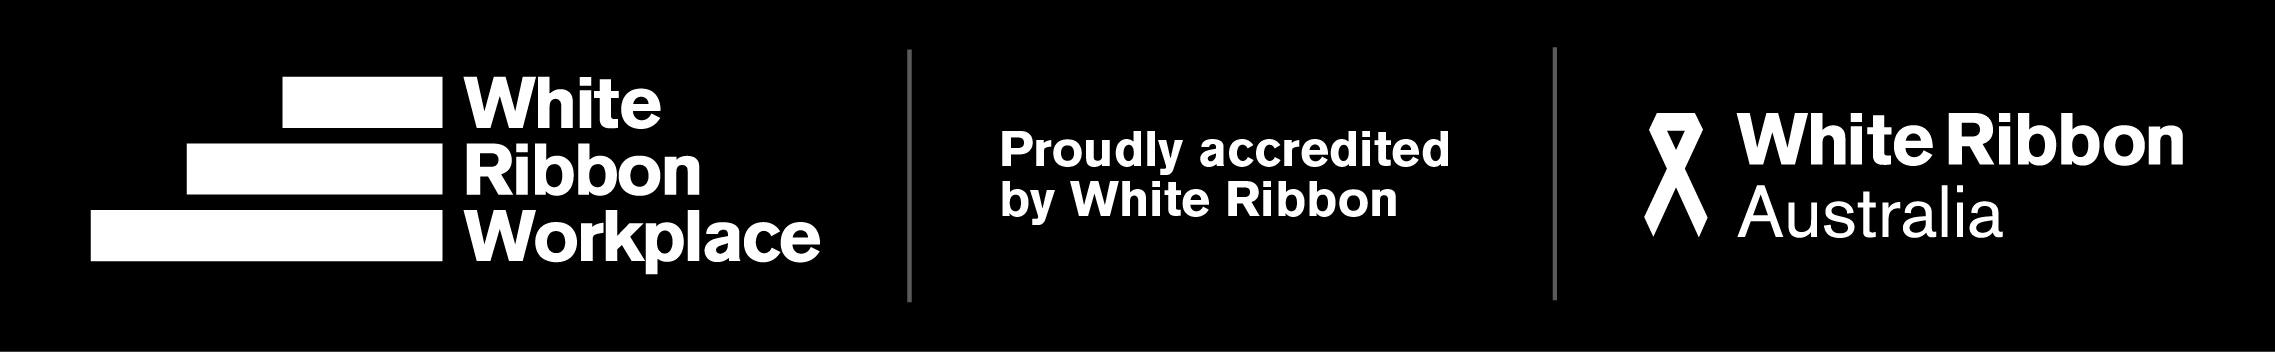 White Ribbon Accredited Workplace